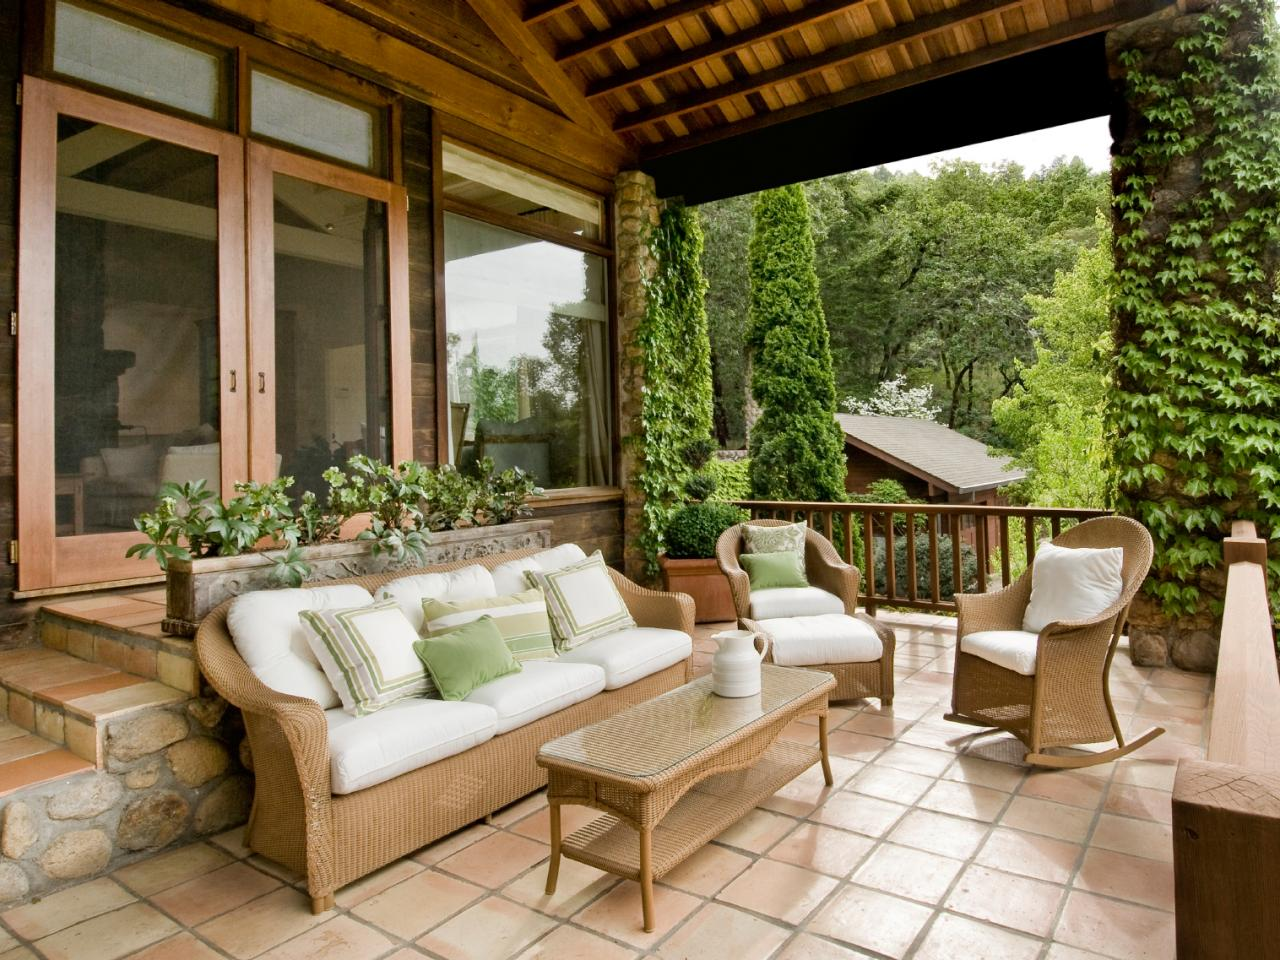 Design tips for the front porch hgtv for House porch design